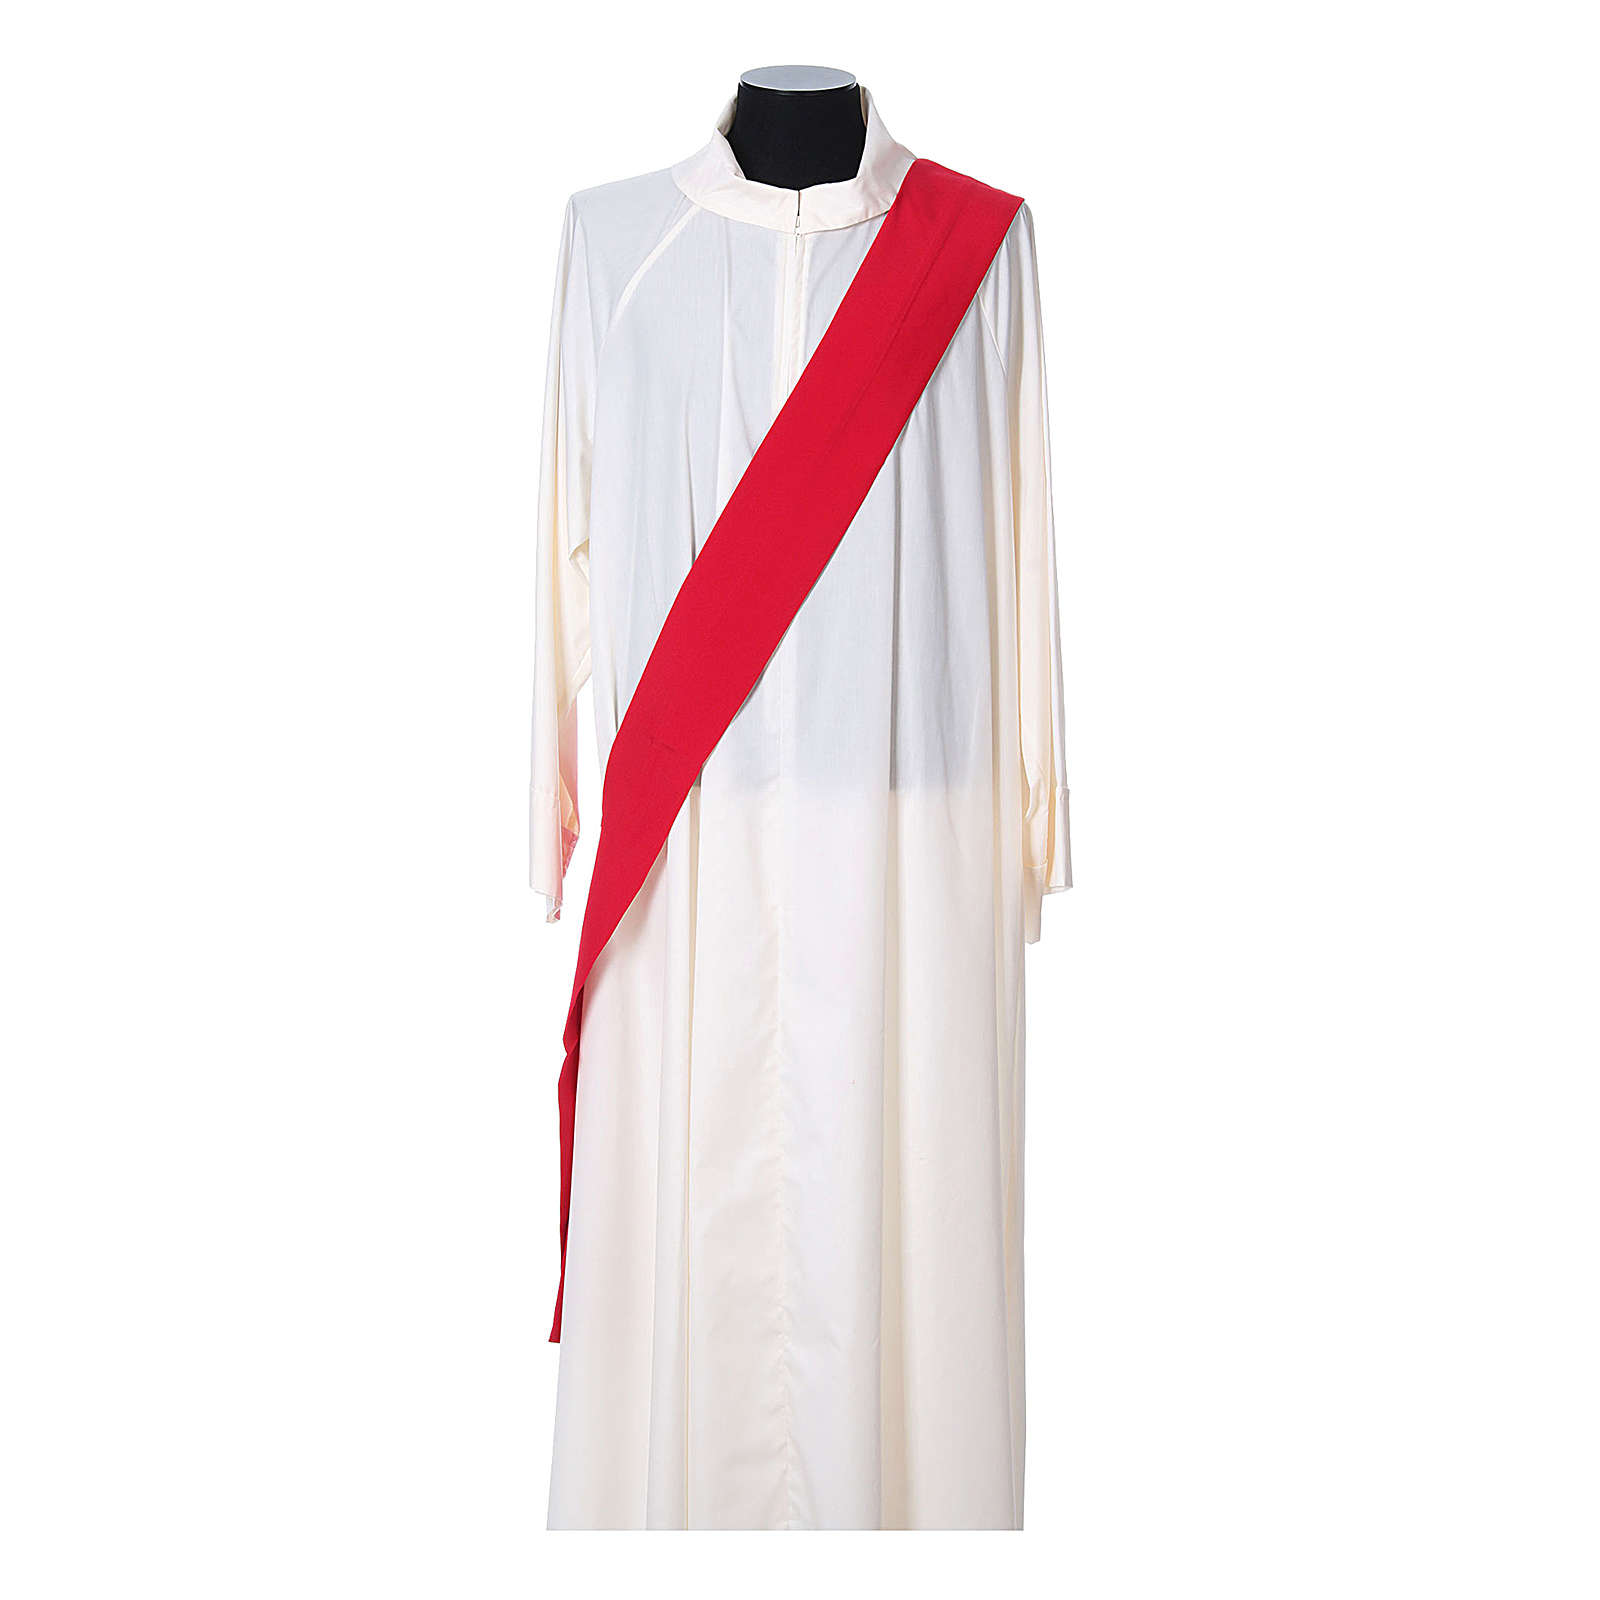 Ultralight Deacon Dalmatic with Peace and lilies embroidery on front and back, Vatican fabric 100% polyester 4